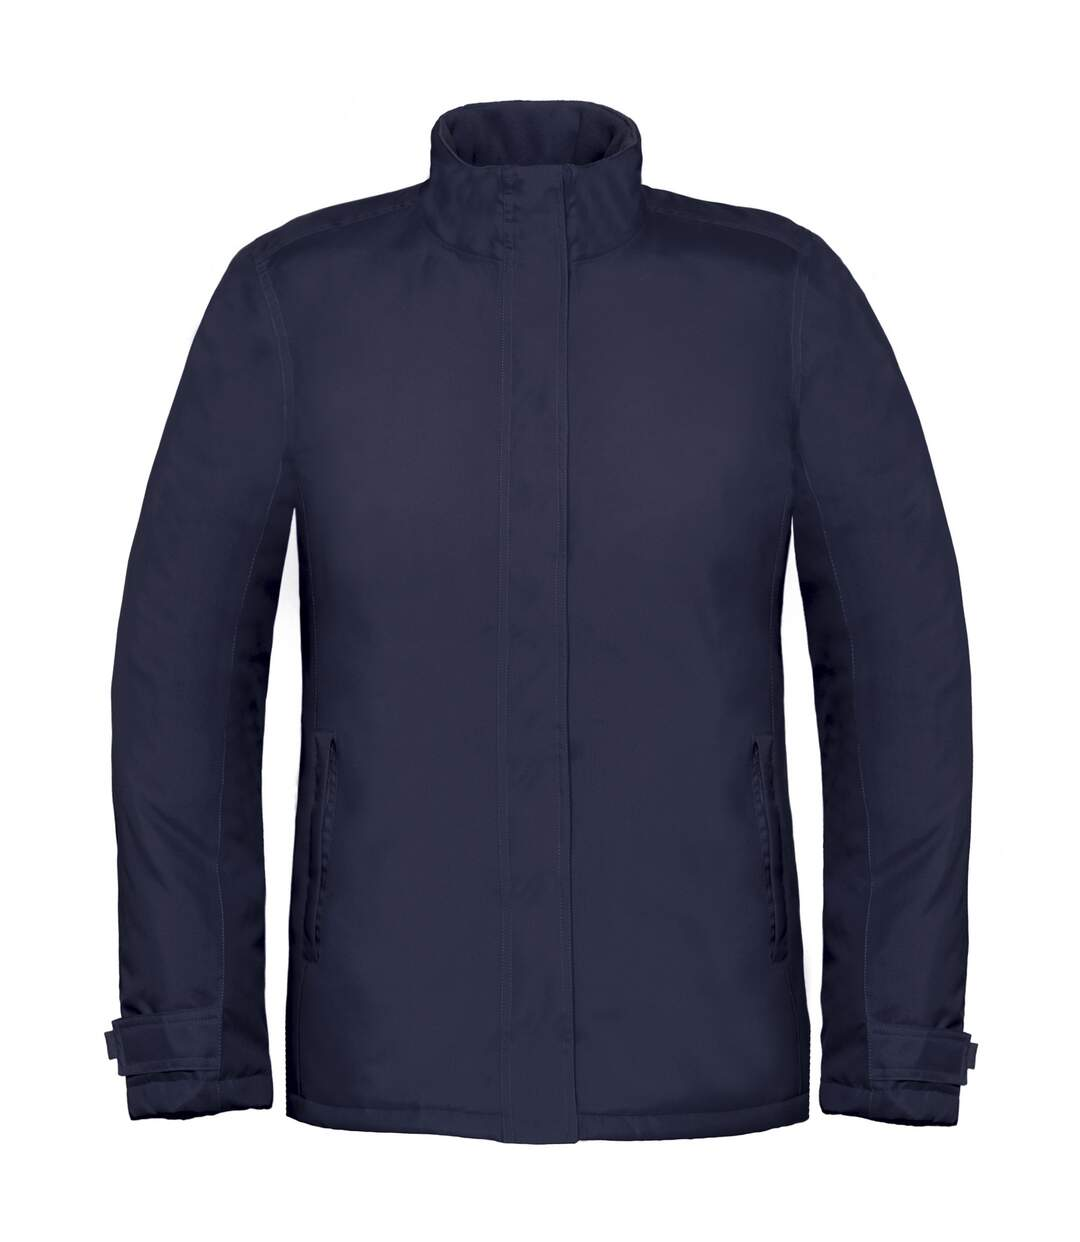 B&C Womens/Ladies Premium Real+ Windproof Waterproof Thermo-Isolated Jacket (Navy Blue) - UTBC2003